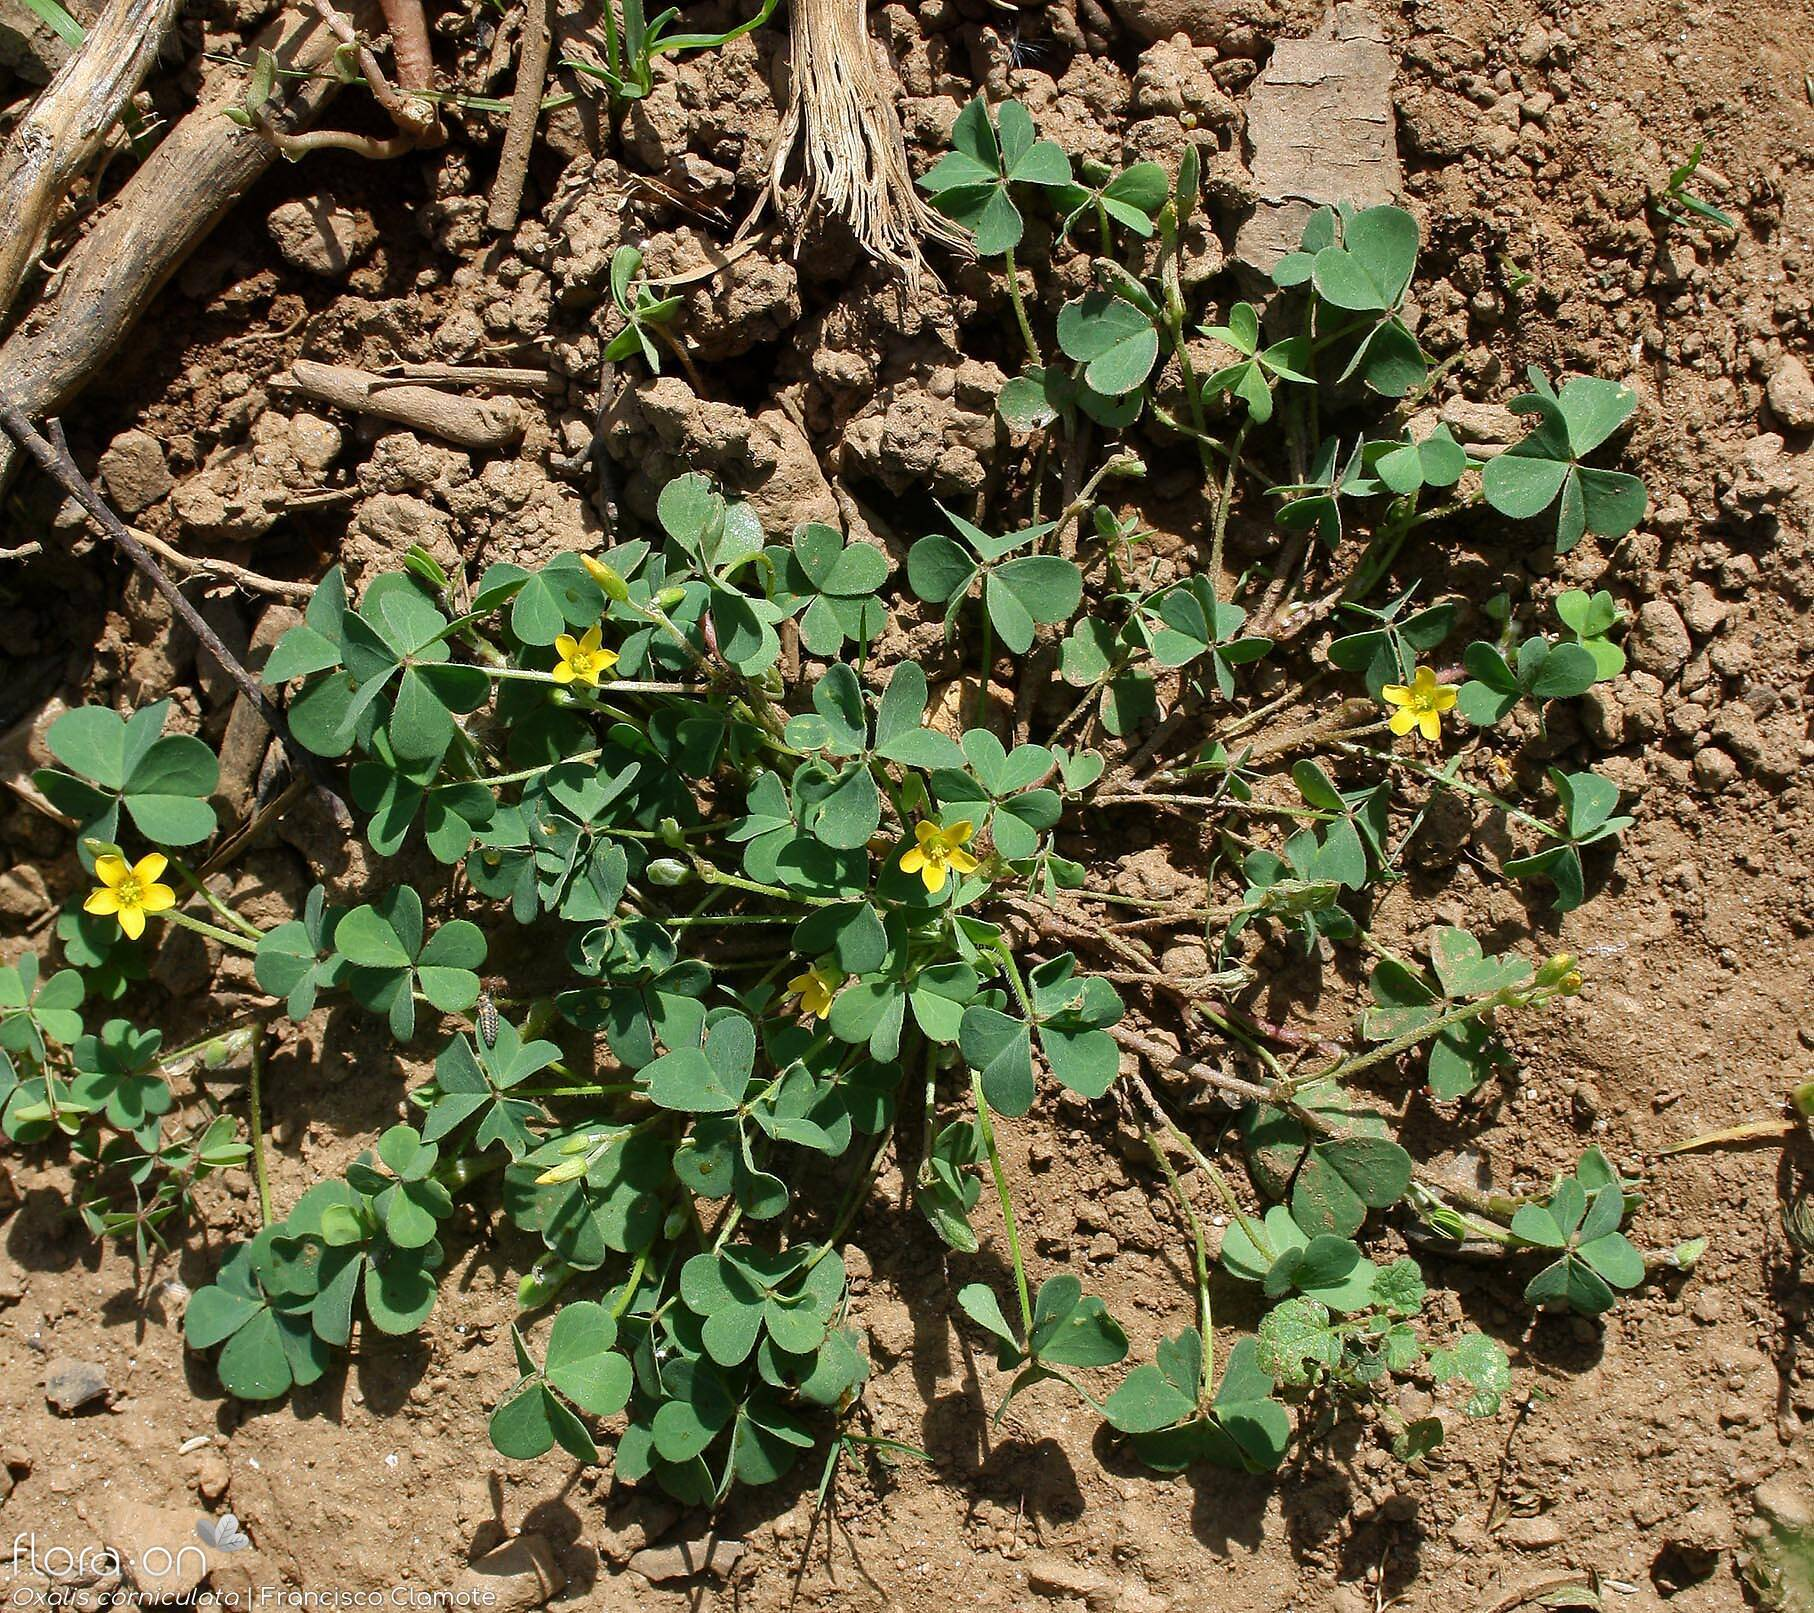 Oxalis corniculata - Hábito | Francisco Clamote; CC BY-NC 4.0